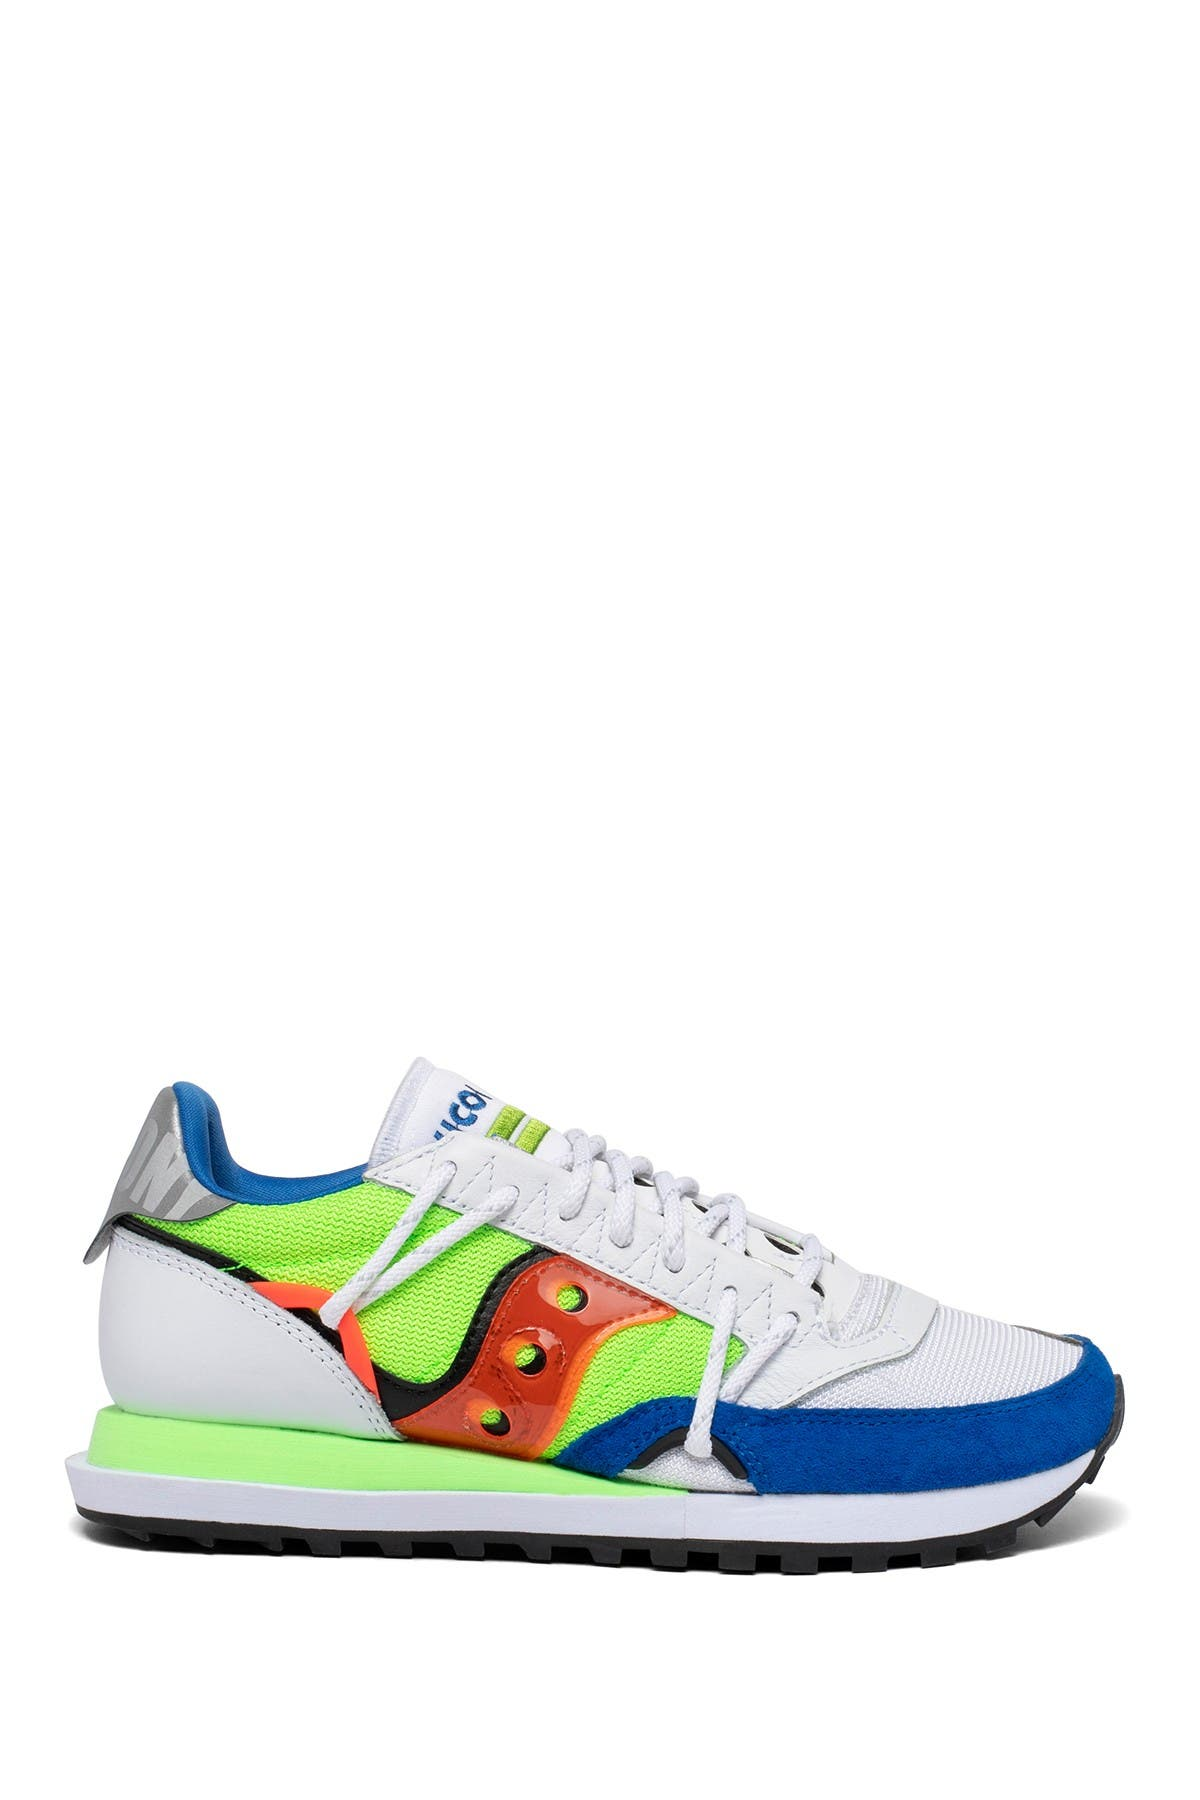 Image of Saucony Jazz DST Athletic Sneaker